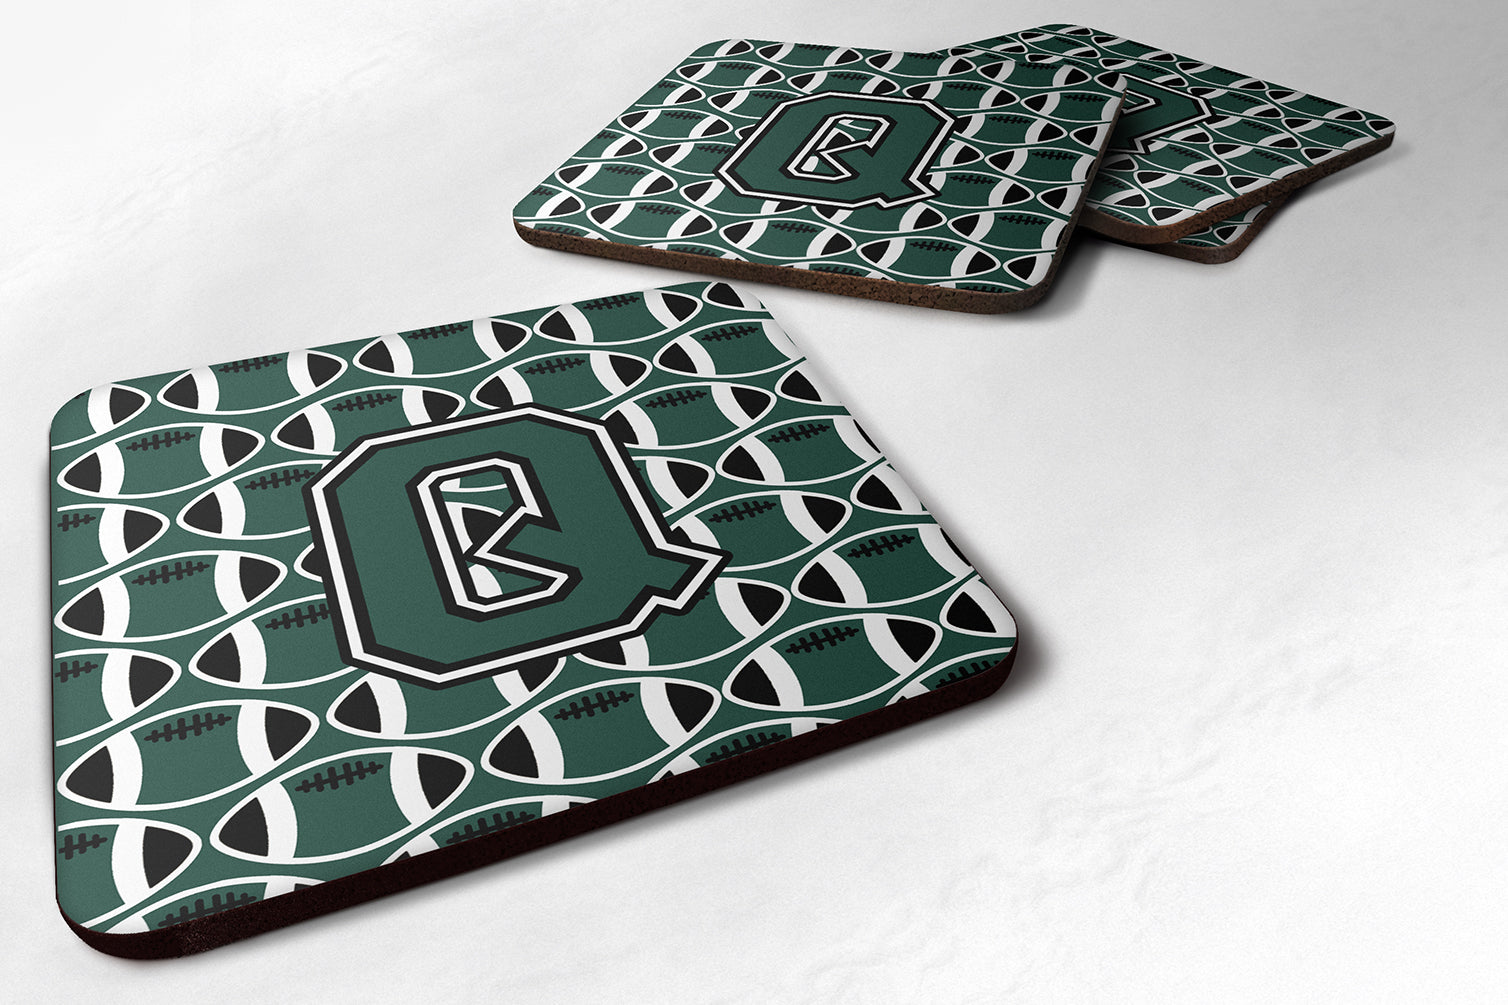 Letter Q Football Green and White Foam Coaster Set of 4 CJ1071-QFC by Caroline's Treasures